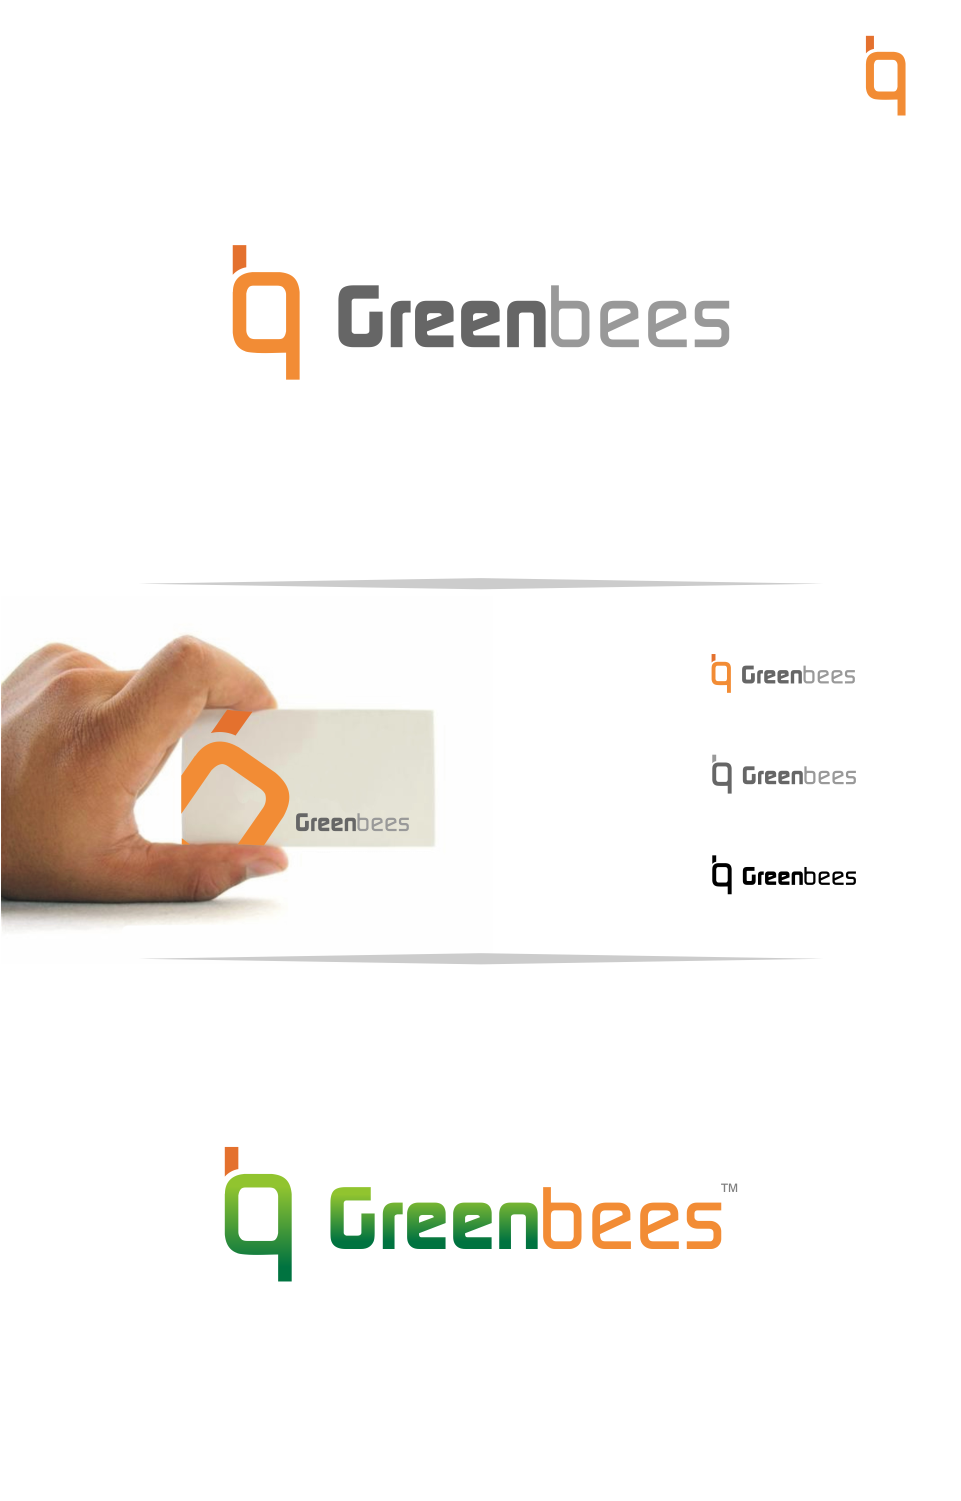 Logo Design by Mitchnick Sunardi - Entry No. 24 in the Logo Design Contest Greenbees Logo Design.